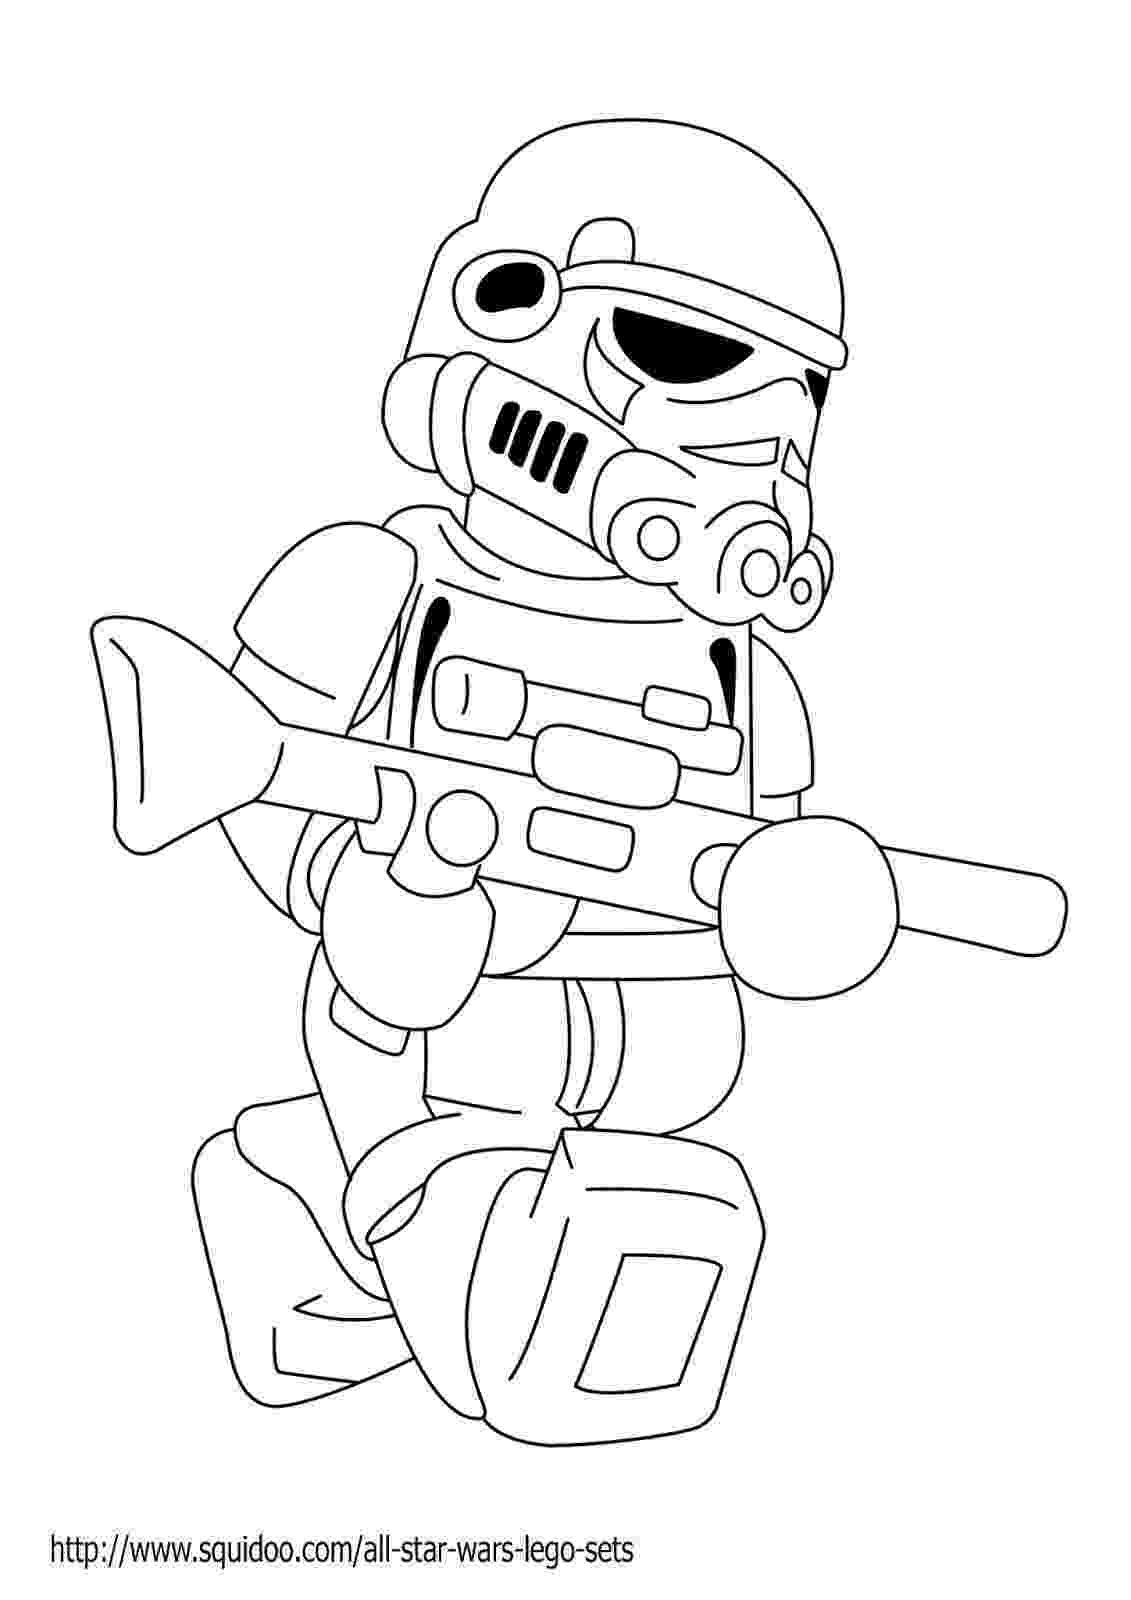 lego figure coloring pages lego coloring pages best coloring pages for kids pages figure lego coloring